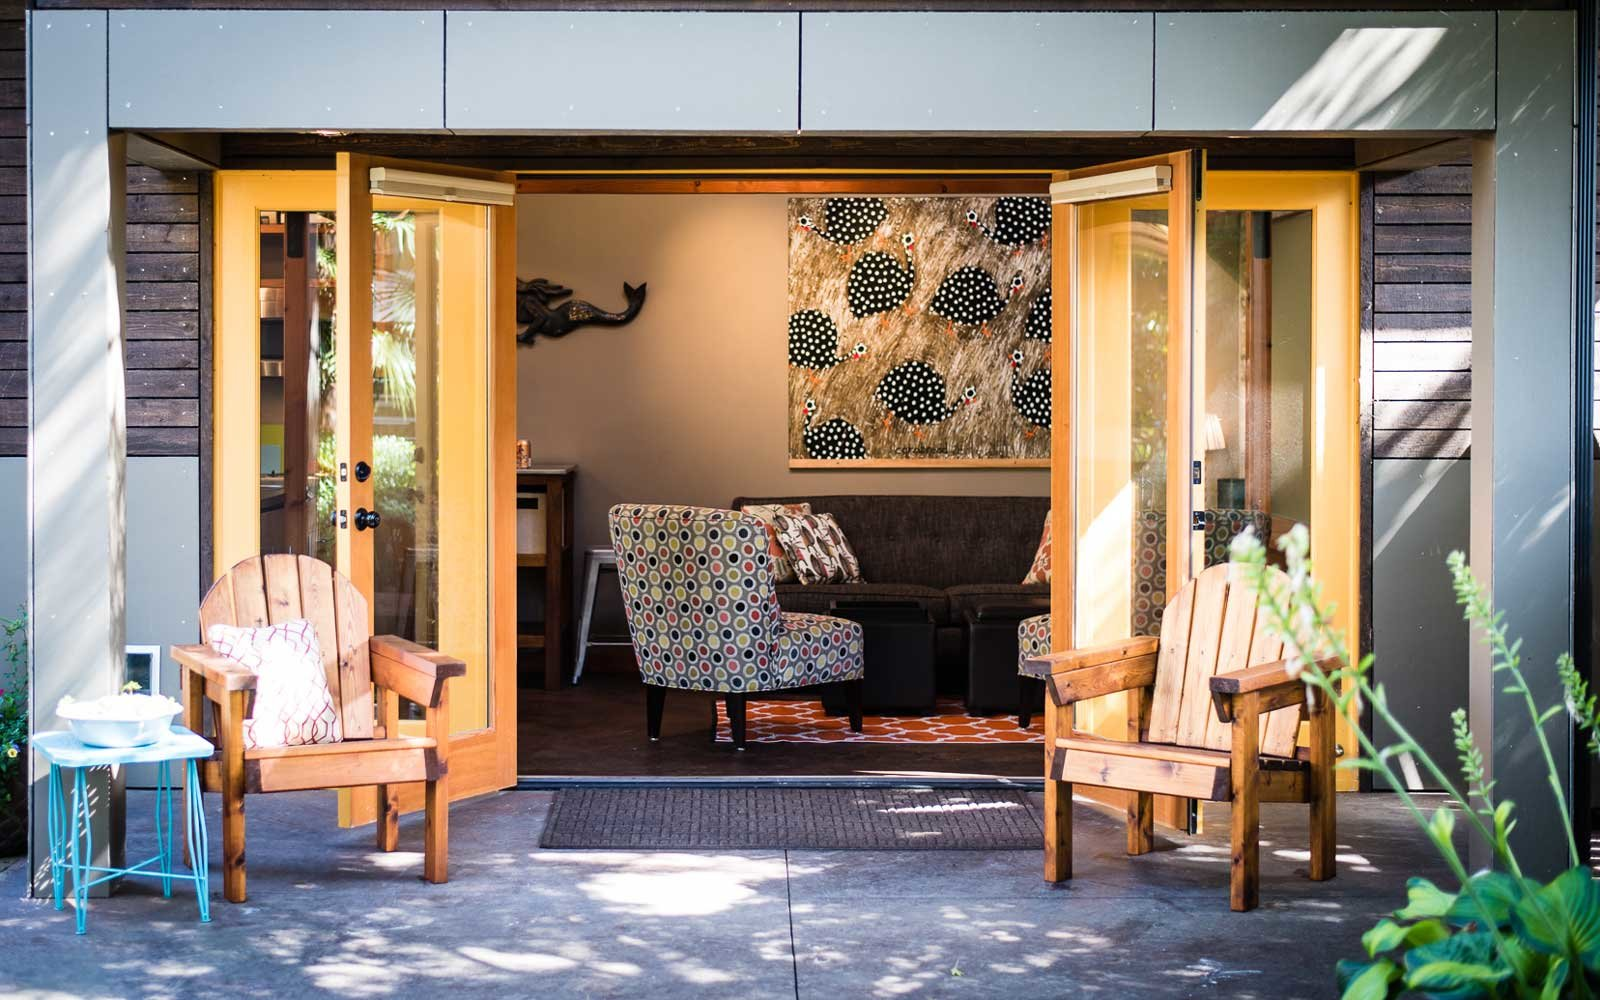 Photos Tiny House Seattle Wa: These Are The Best Airbnbs In Seattle, From Tiny Houses To